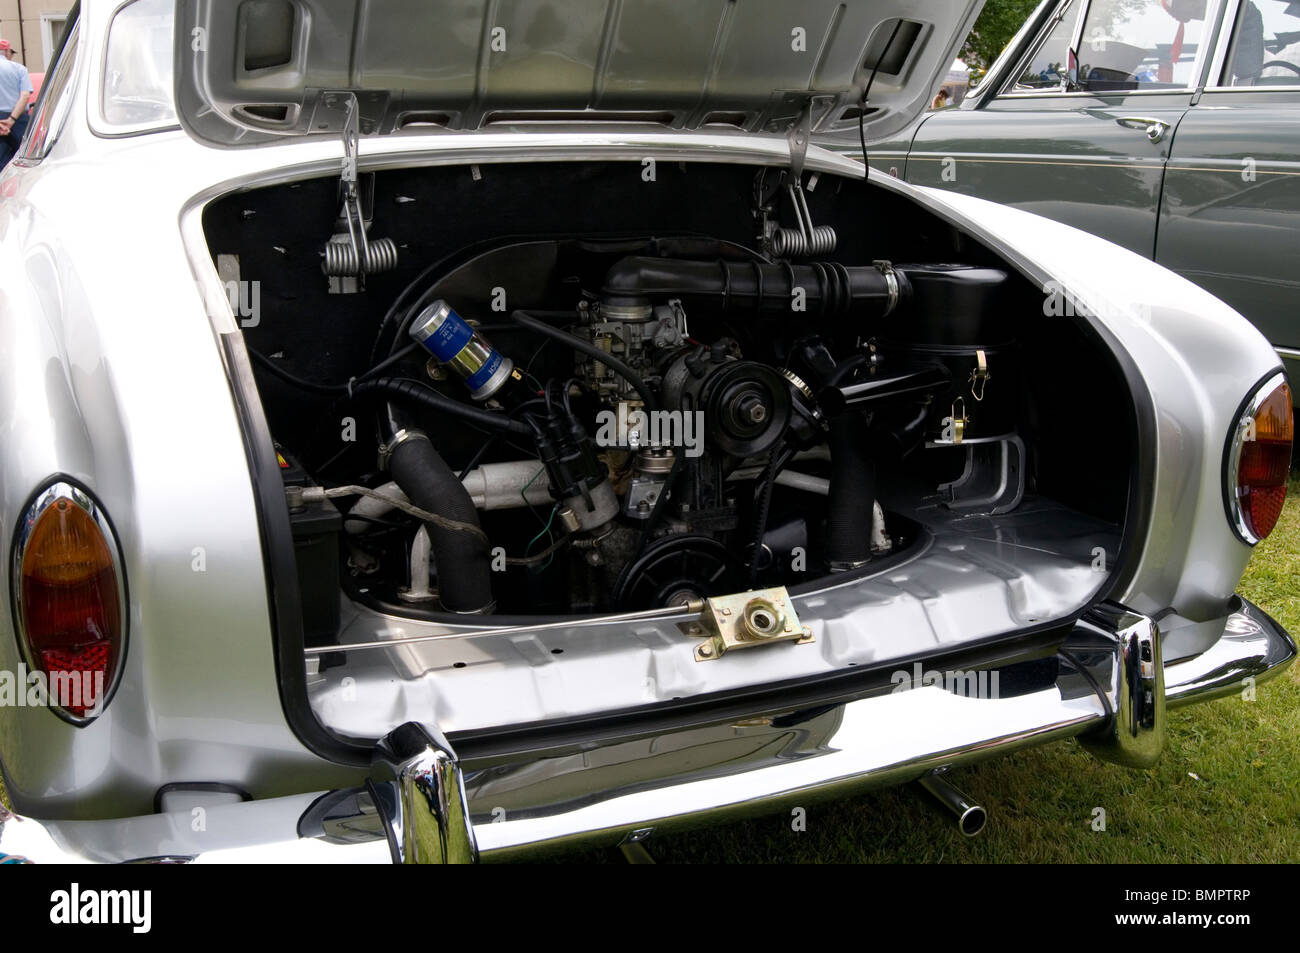 vw karman ghia volkswagen engine beetle flat four - Stock Image